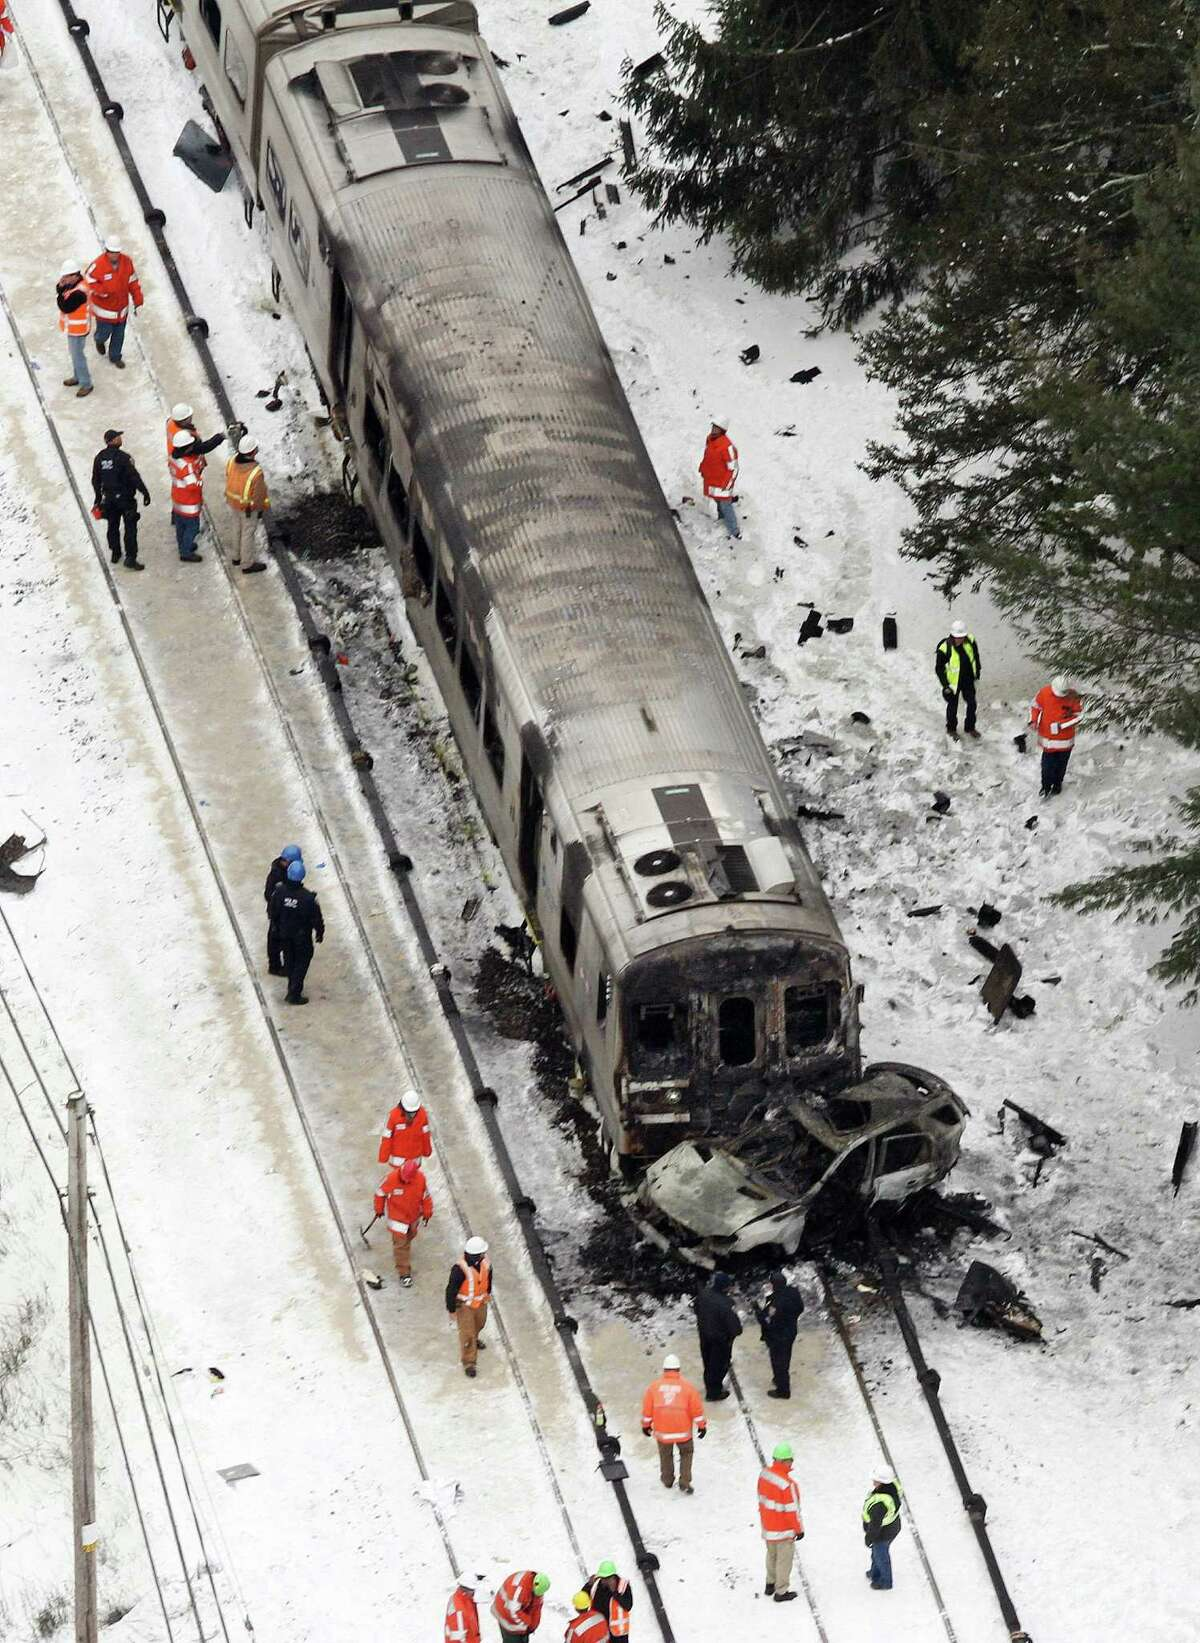 In this aerial photo, personnel from various agencies work the scene of a deadly SUV and commuter train accident in Valhalla, N.Y., Wednesday, Feb. 4, 2015. The packed Metro-North Railroad train slammed into a SUV on the tracks and erupted into flames Tuesday night, killing some and injuring others, sending passengers scrambling for safety, authorities said. (AP Photo/The Journal-News, Frank Becerra Jr.)